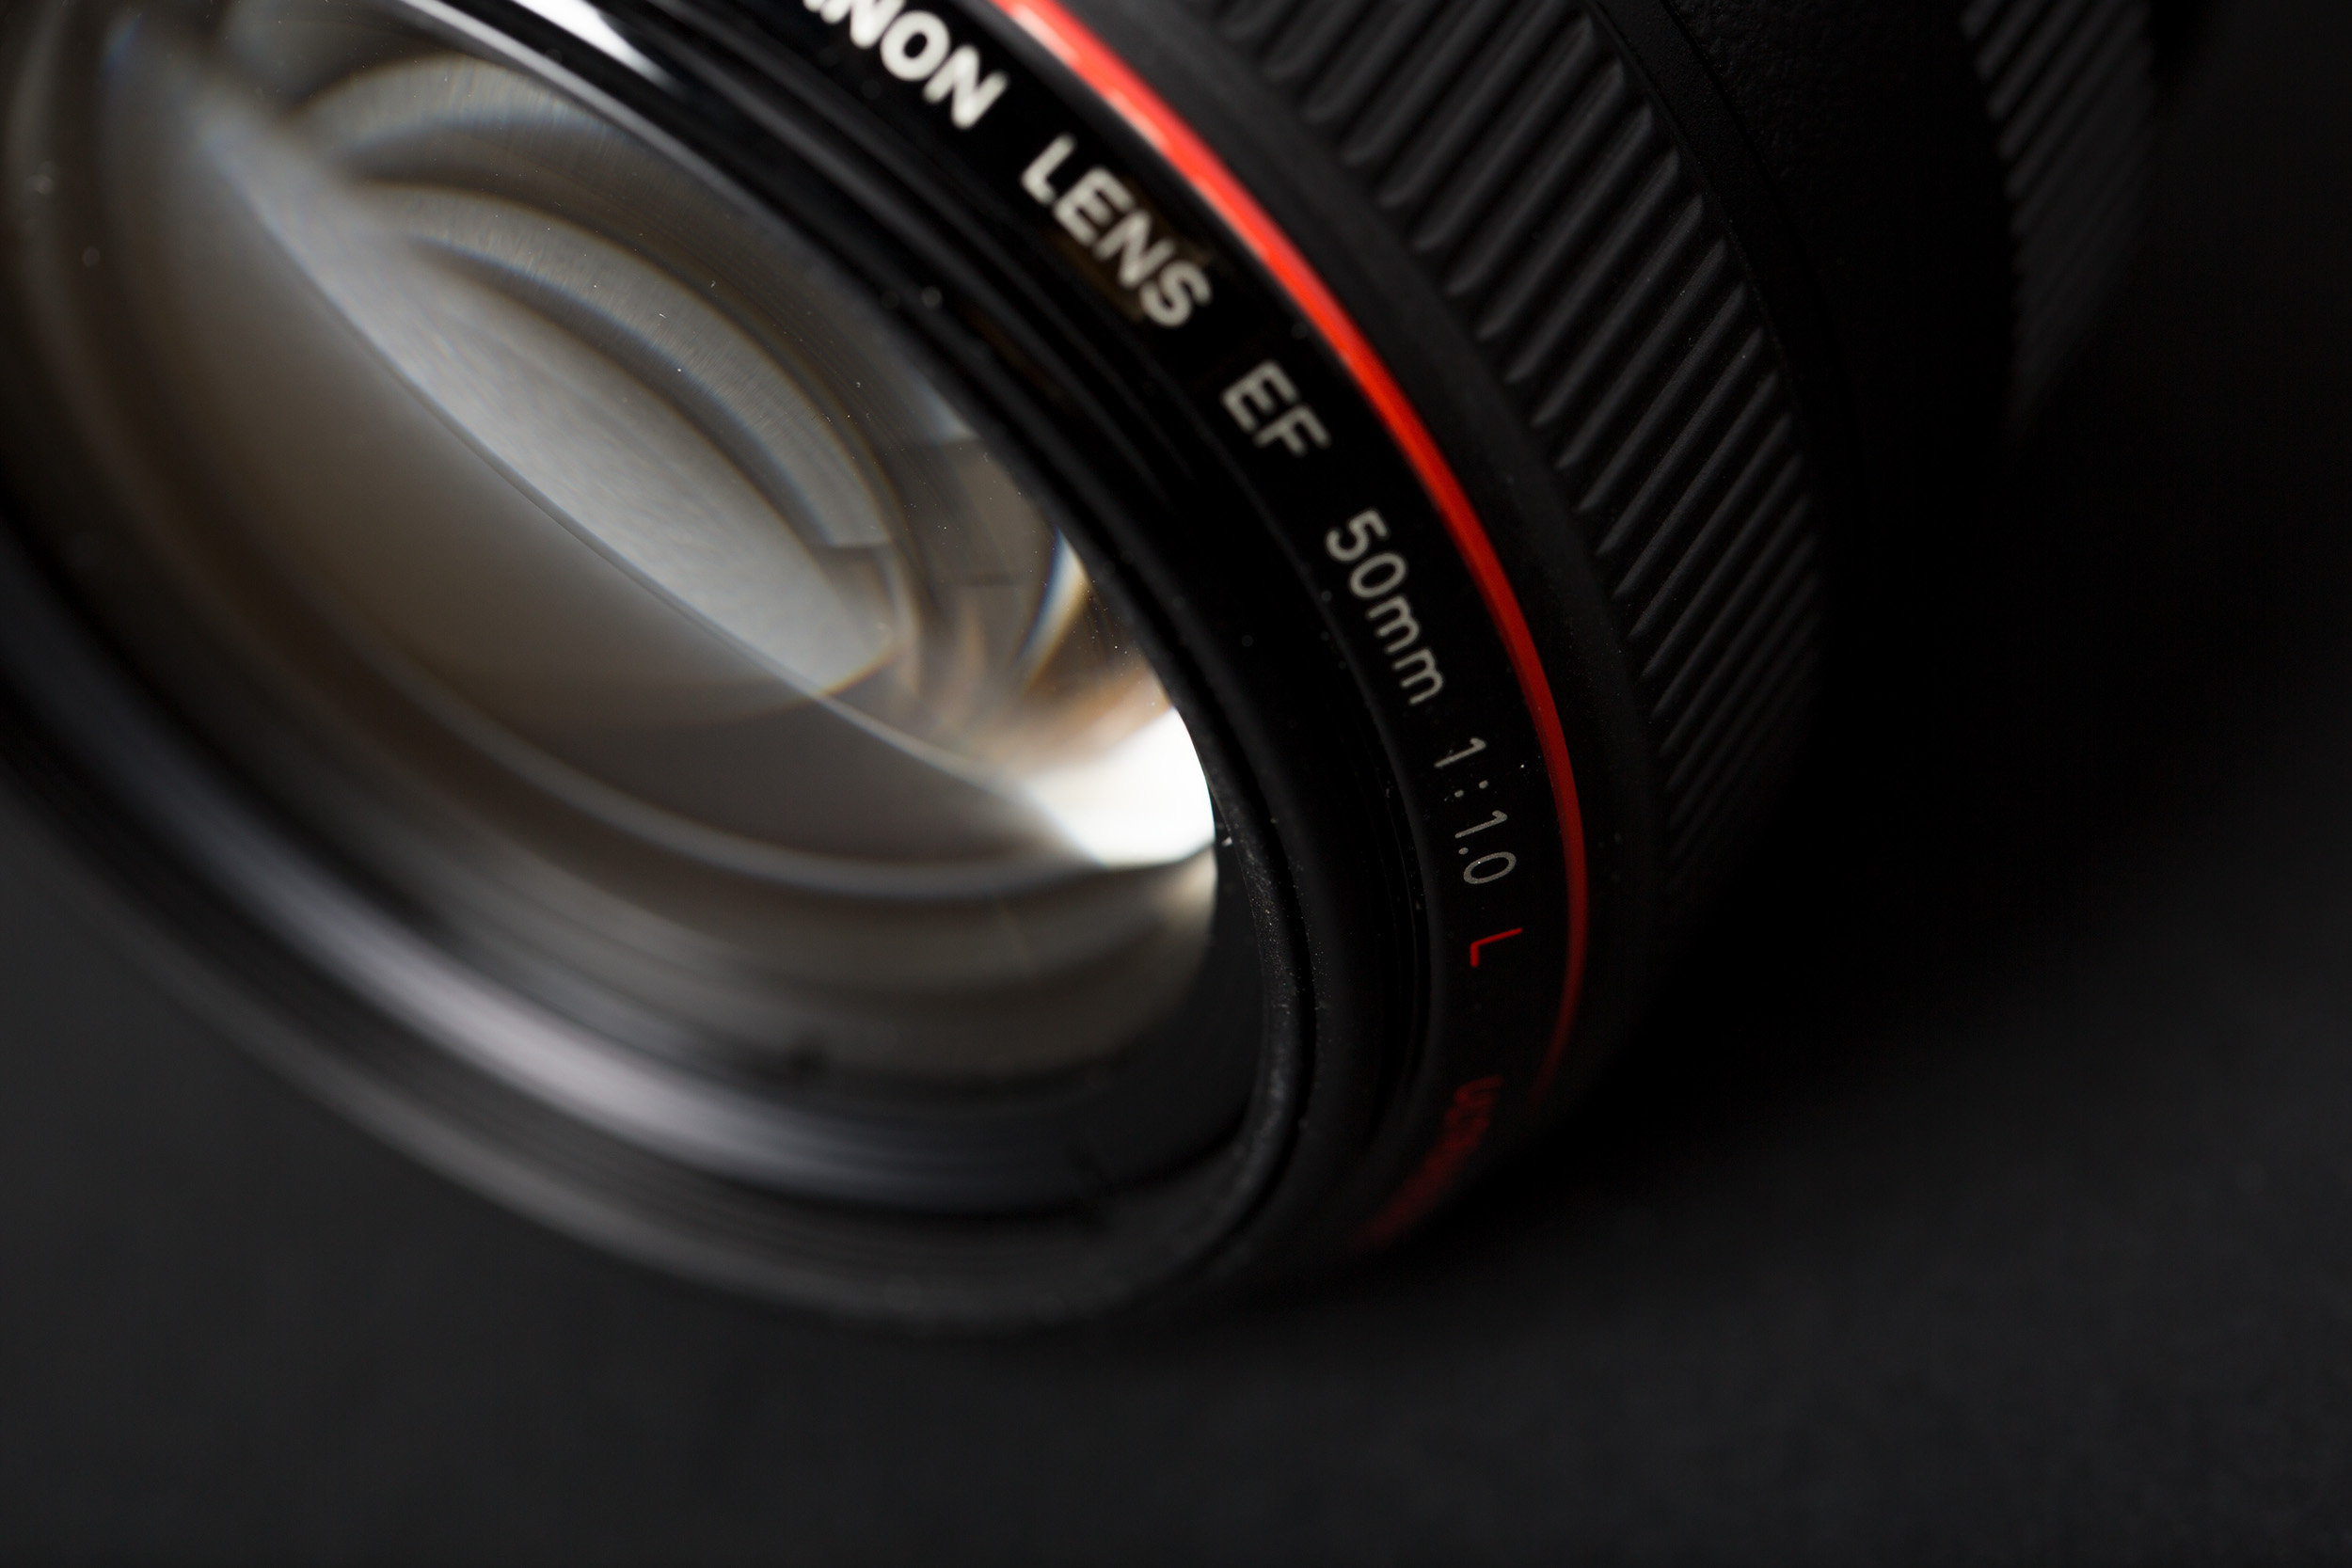 Canon 50mm f/1.0 Review